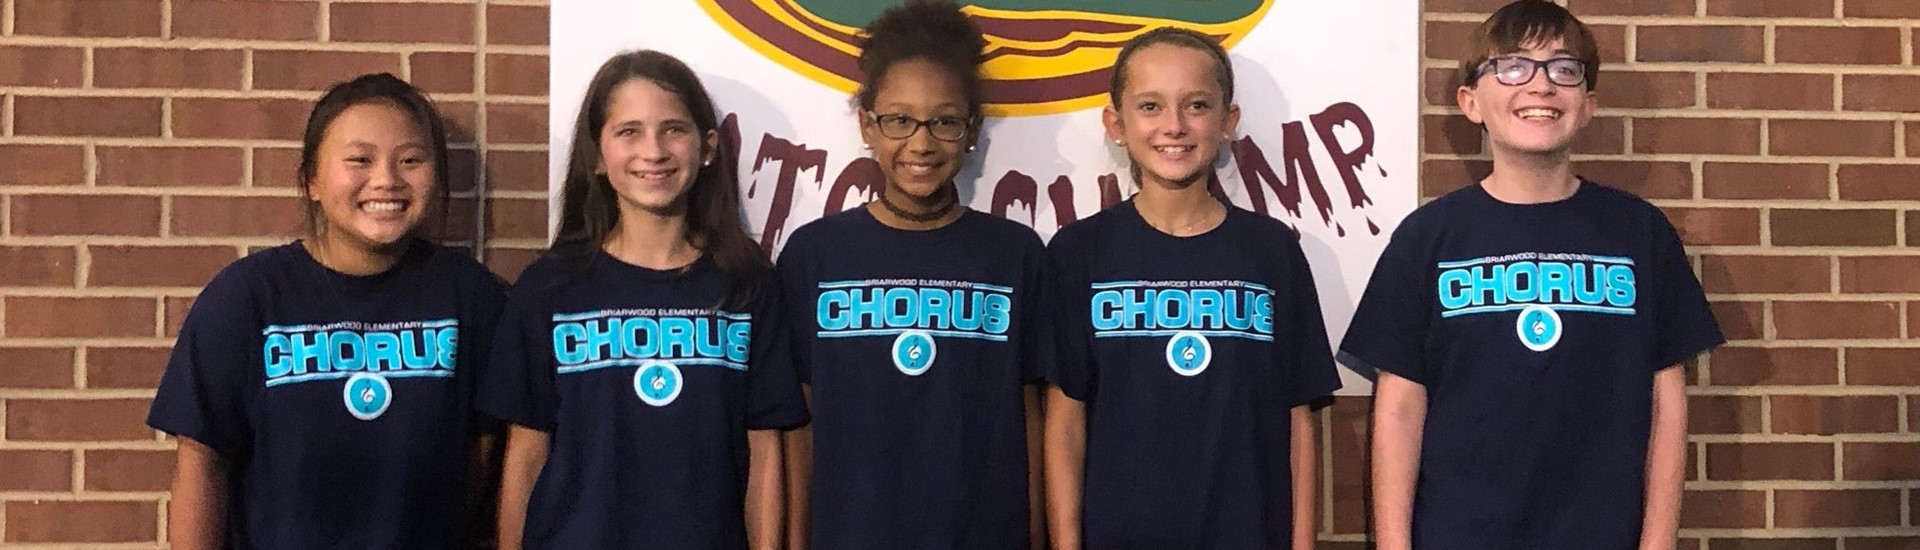 Some of our Briarwood Chorus members sang The National Anthem for DCMS soccer game.